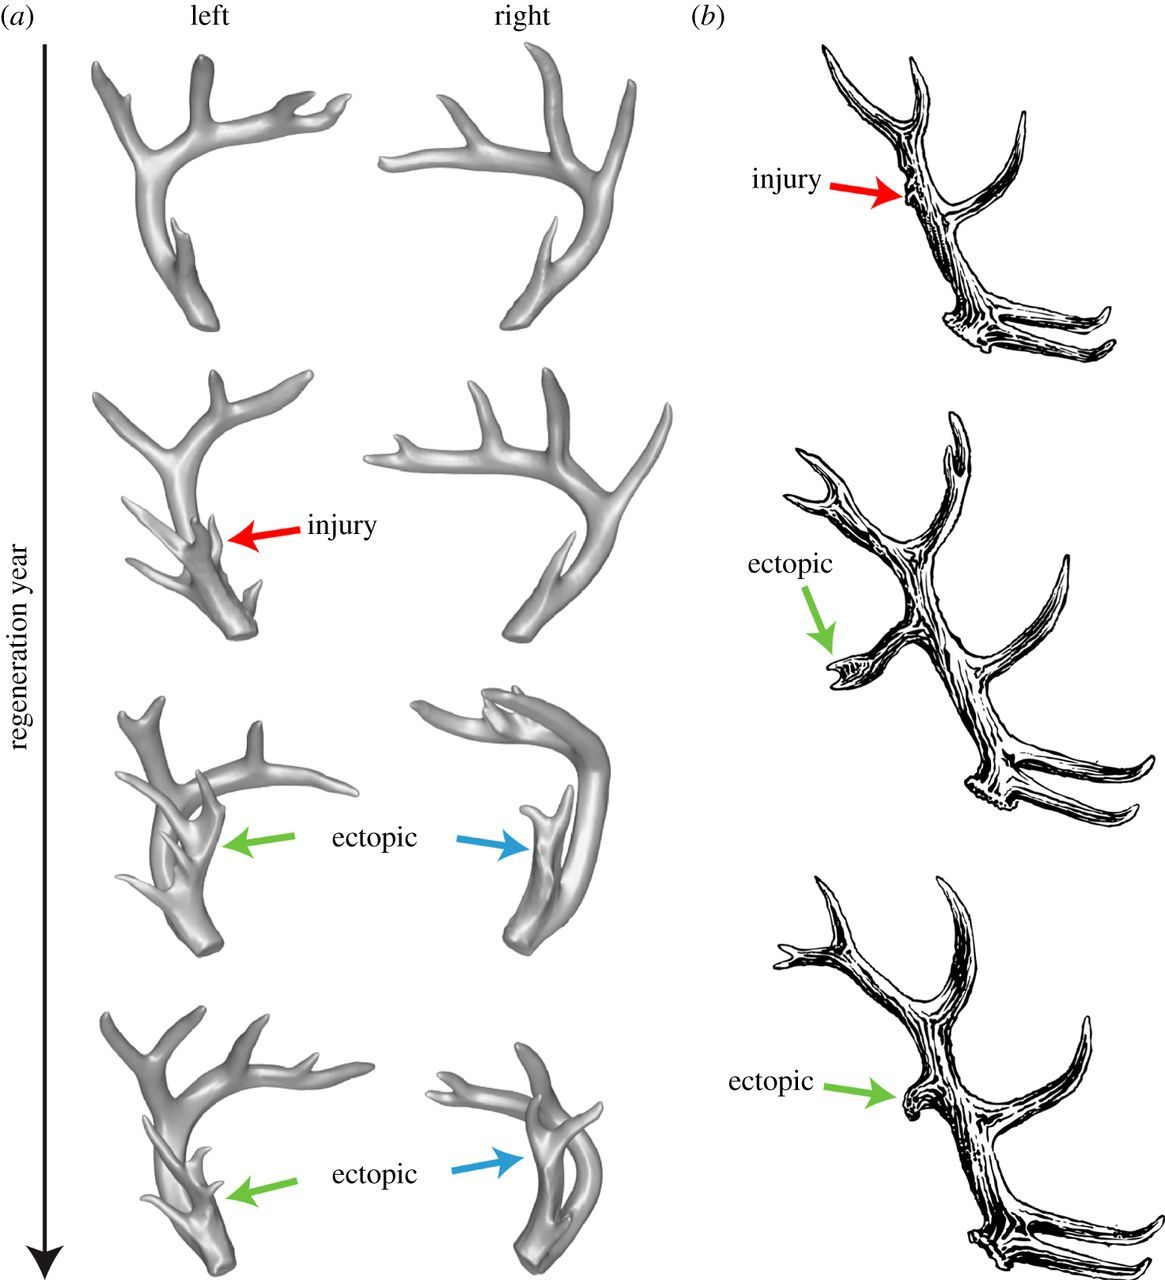 A Linear Encoding Model Explains The Variability Of The